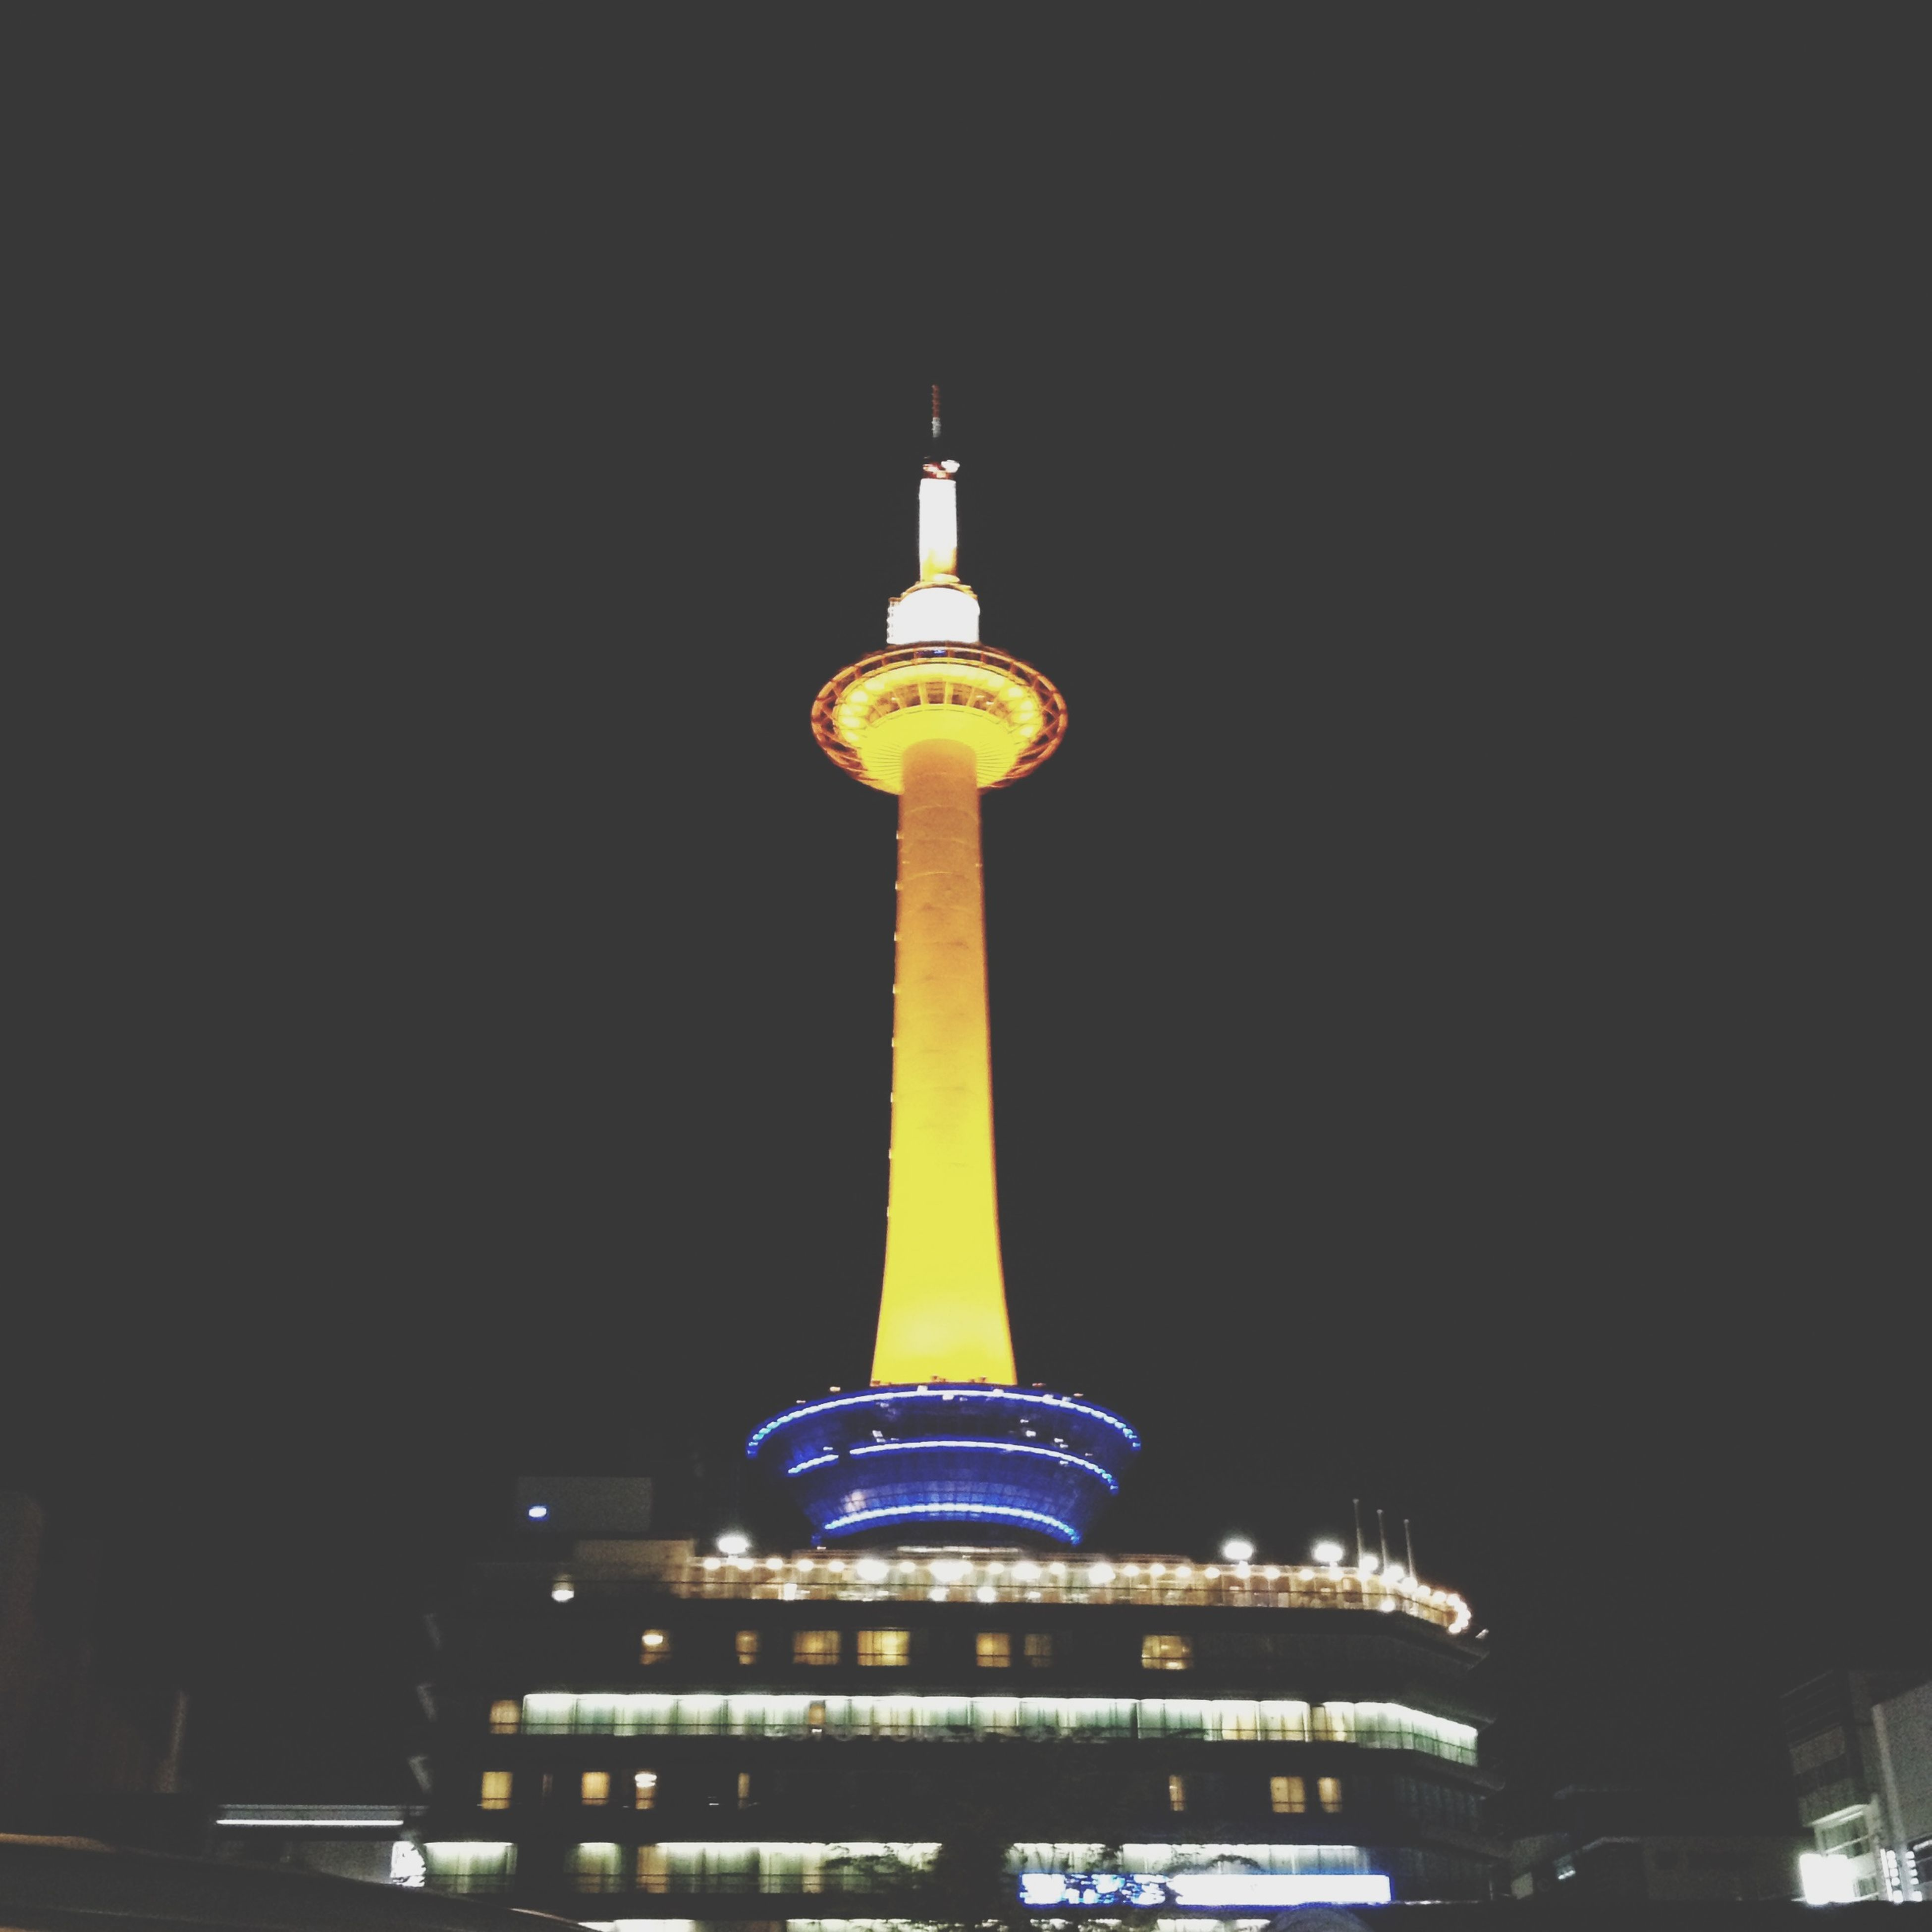 architecture, built structure, building exterior, tower, illuminated, international landmark, famous place, communications tower, night, travel destinations, tall - high, capital cities, spire, low angle view, tourism, travel, clear sky, communication, city, culture